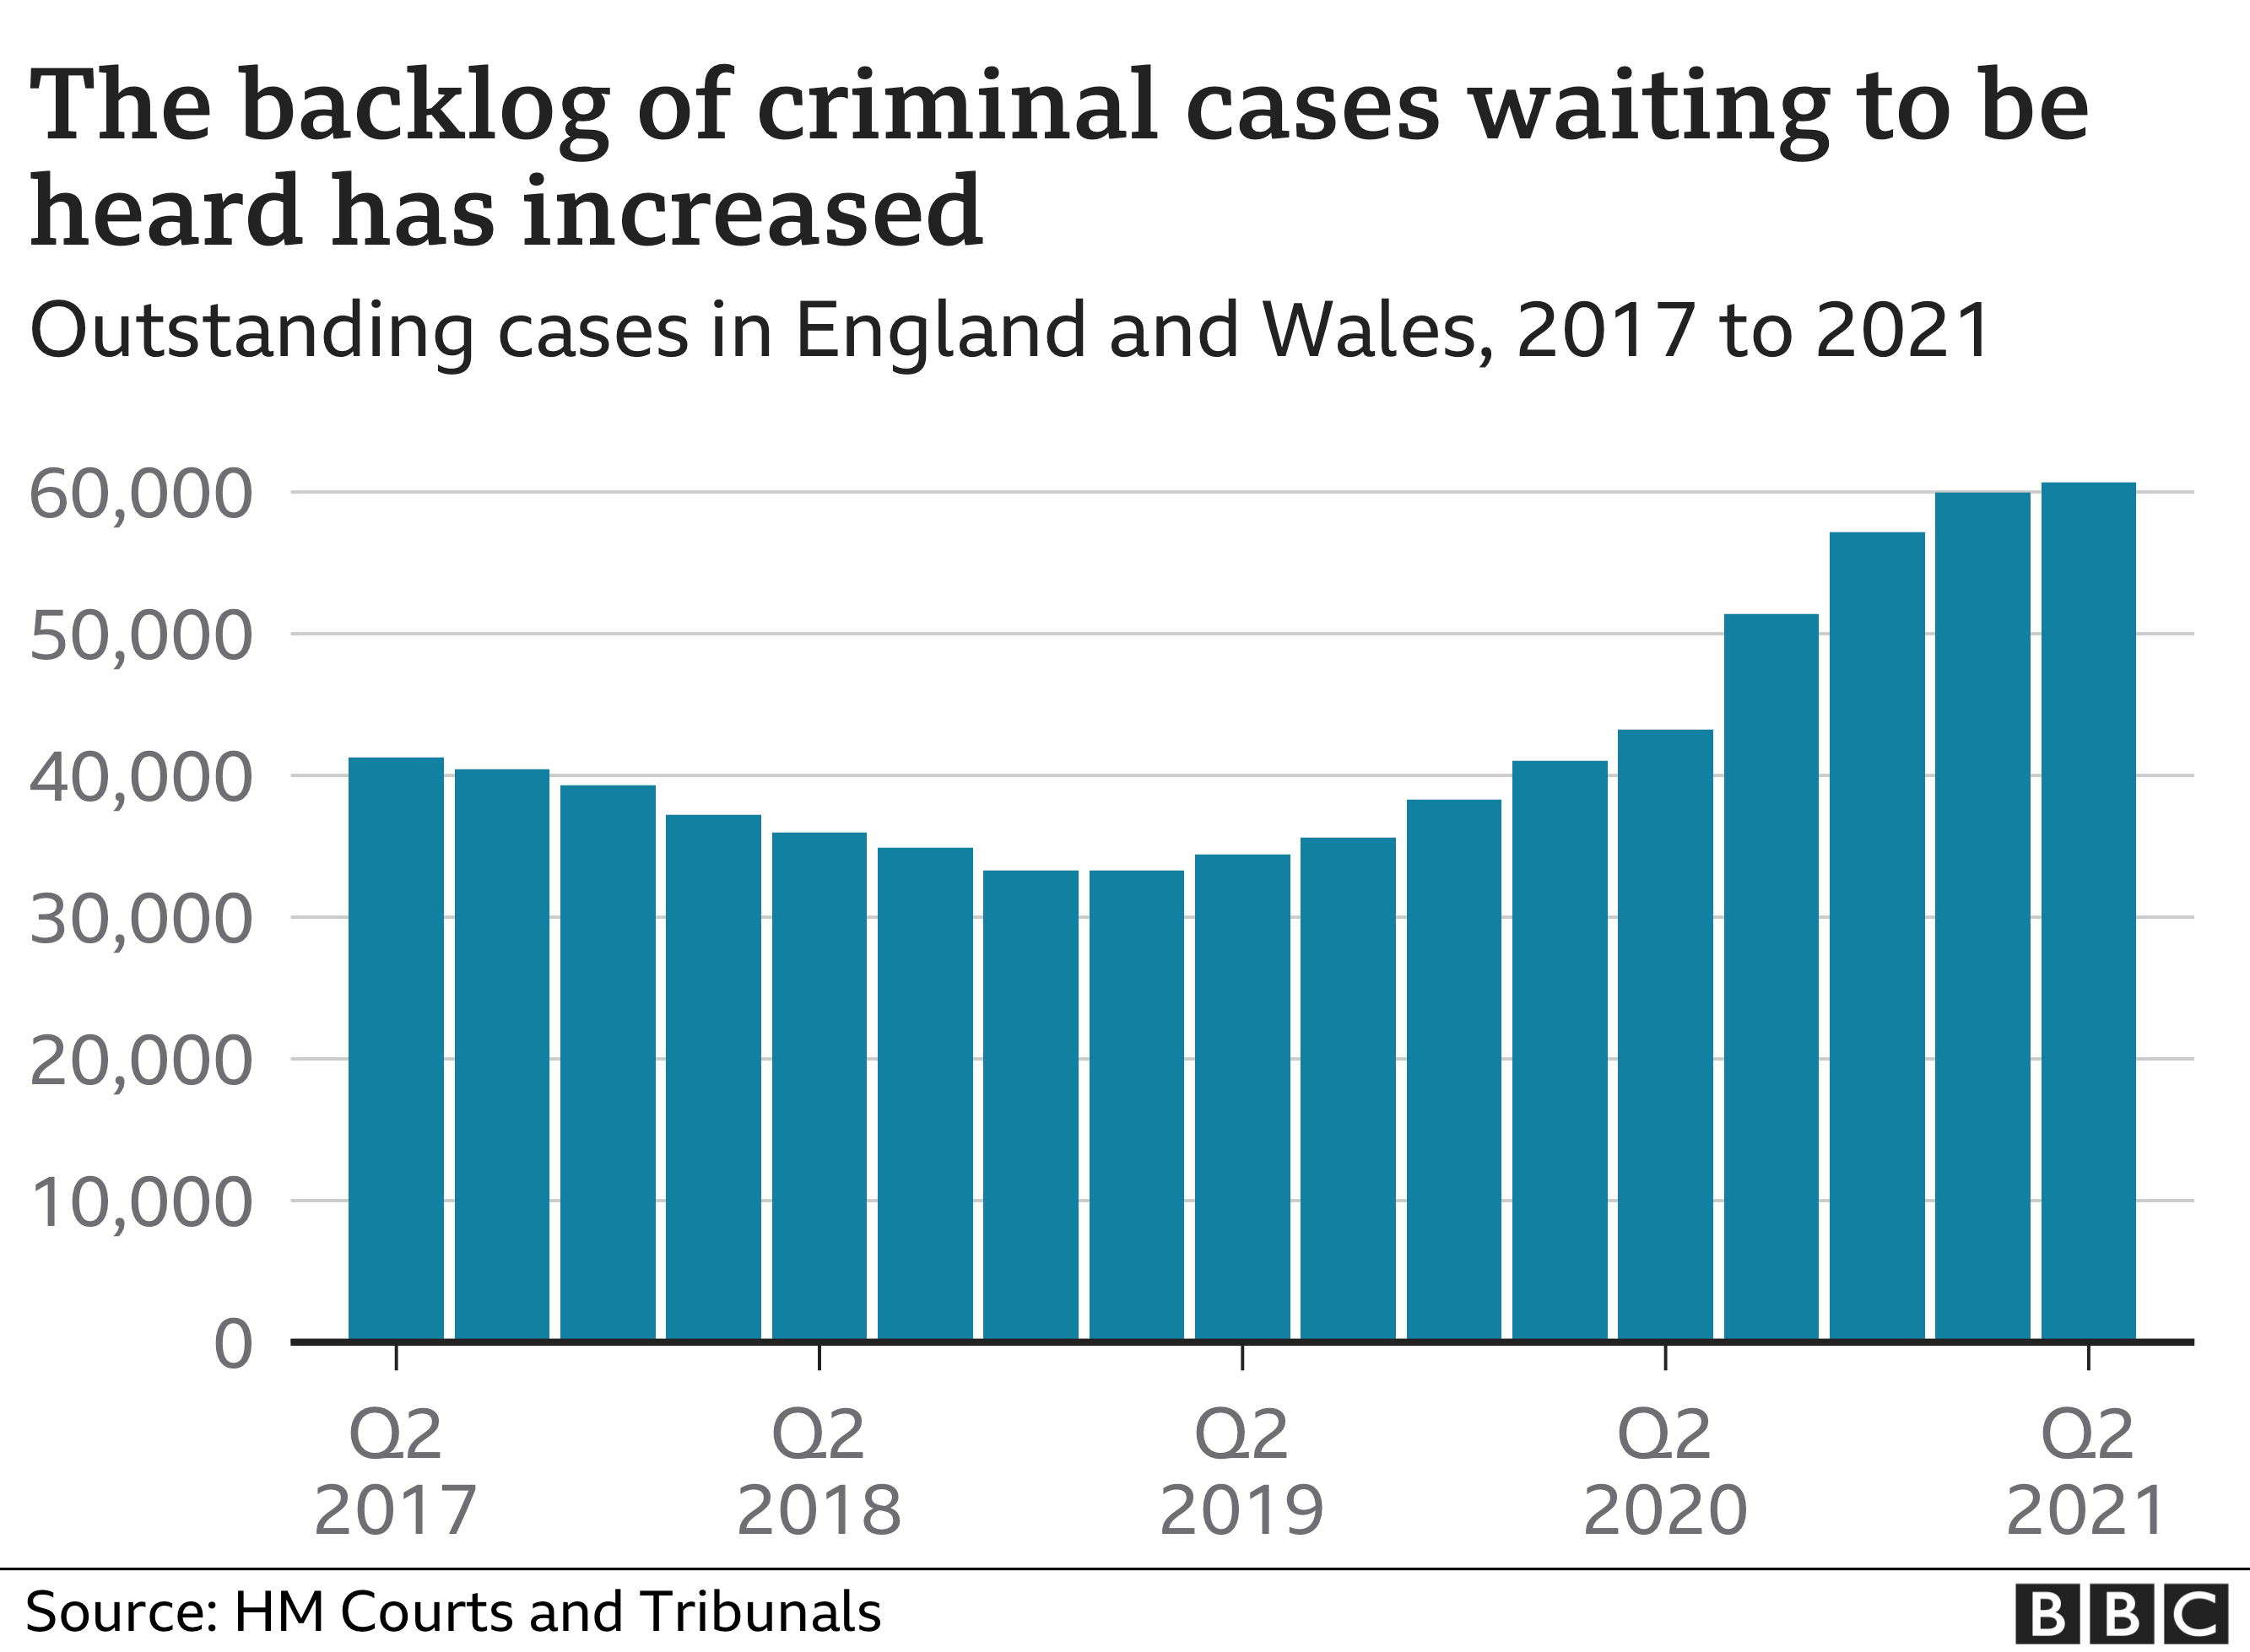 Chart showing the backlog of outstanding criminal cases in England and Wales 2017 to 2021